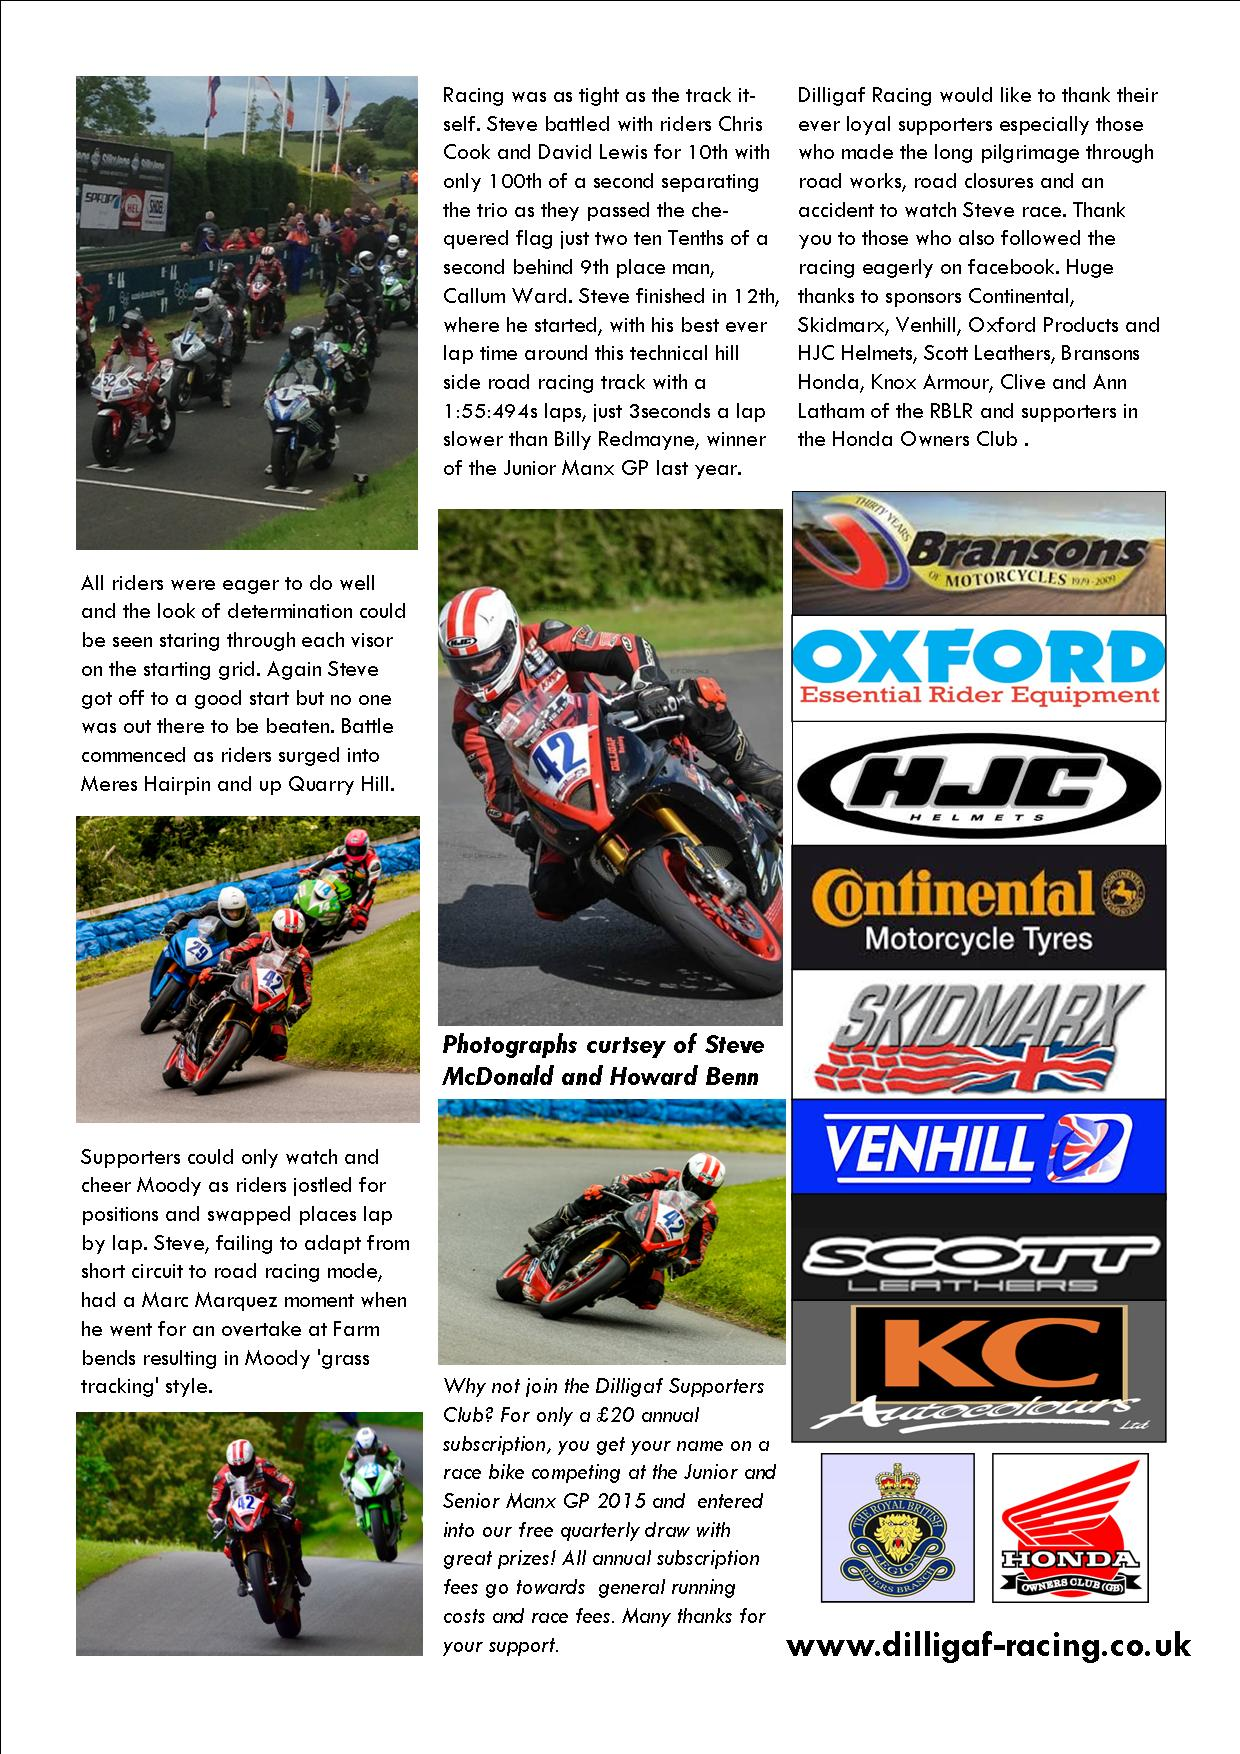 dilligaf racing news vol 12 olivers mount June 2015 p3